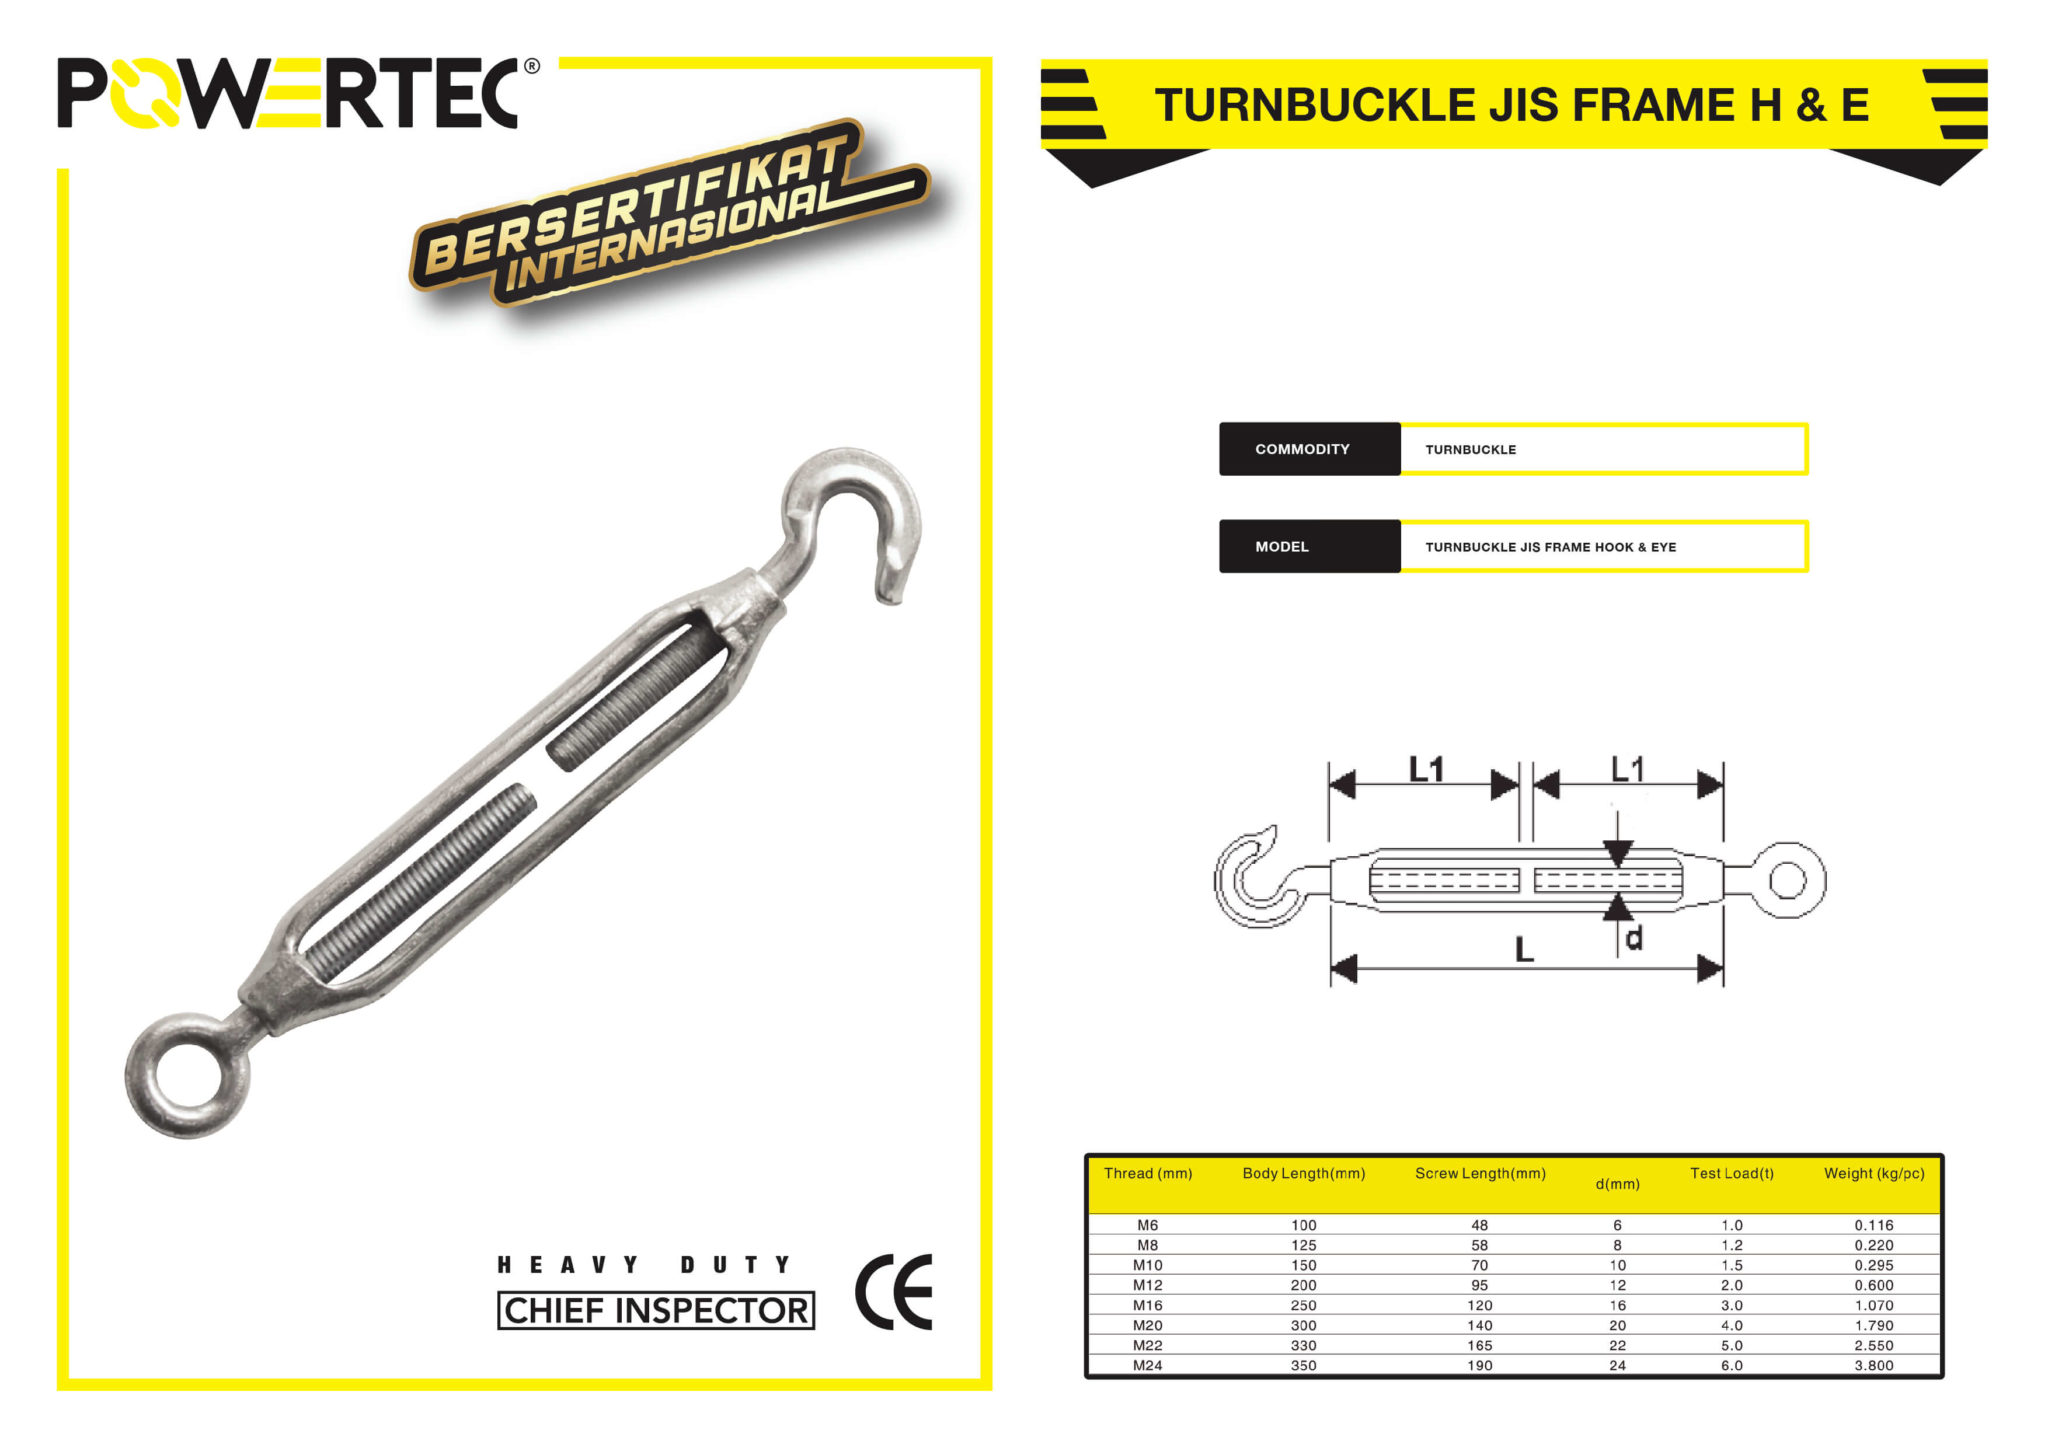 POWERTEC TURNBUCKLE JIS FRAME HOOK & EYE BROCHURE